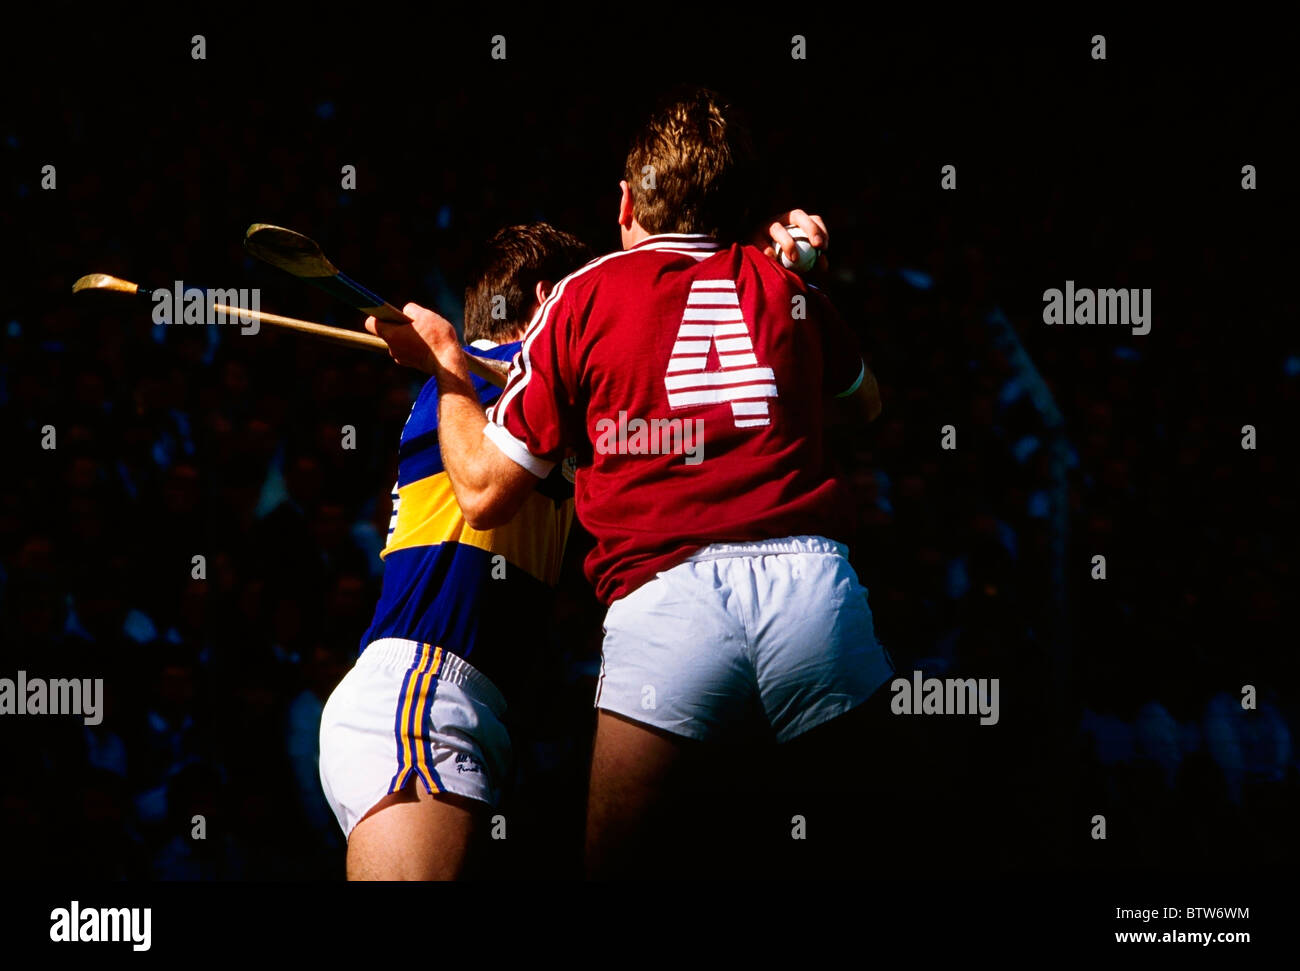 Hurling, Galway Versus Tipperary, Ireland - Stock Image